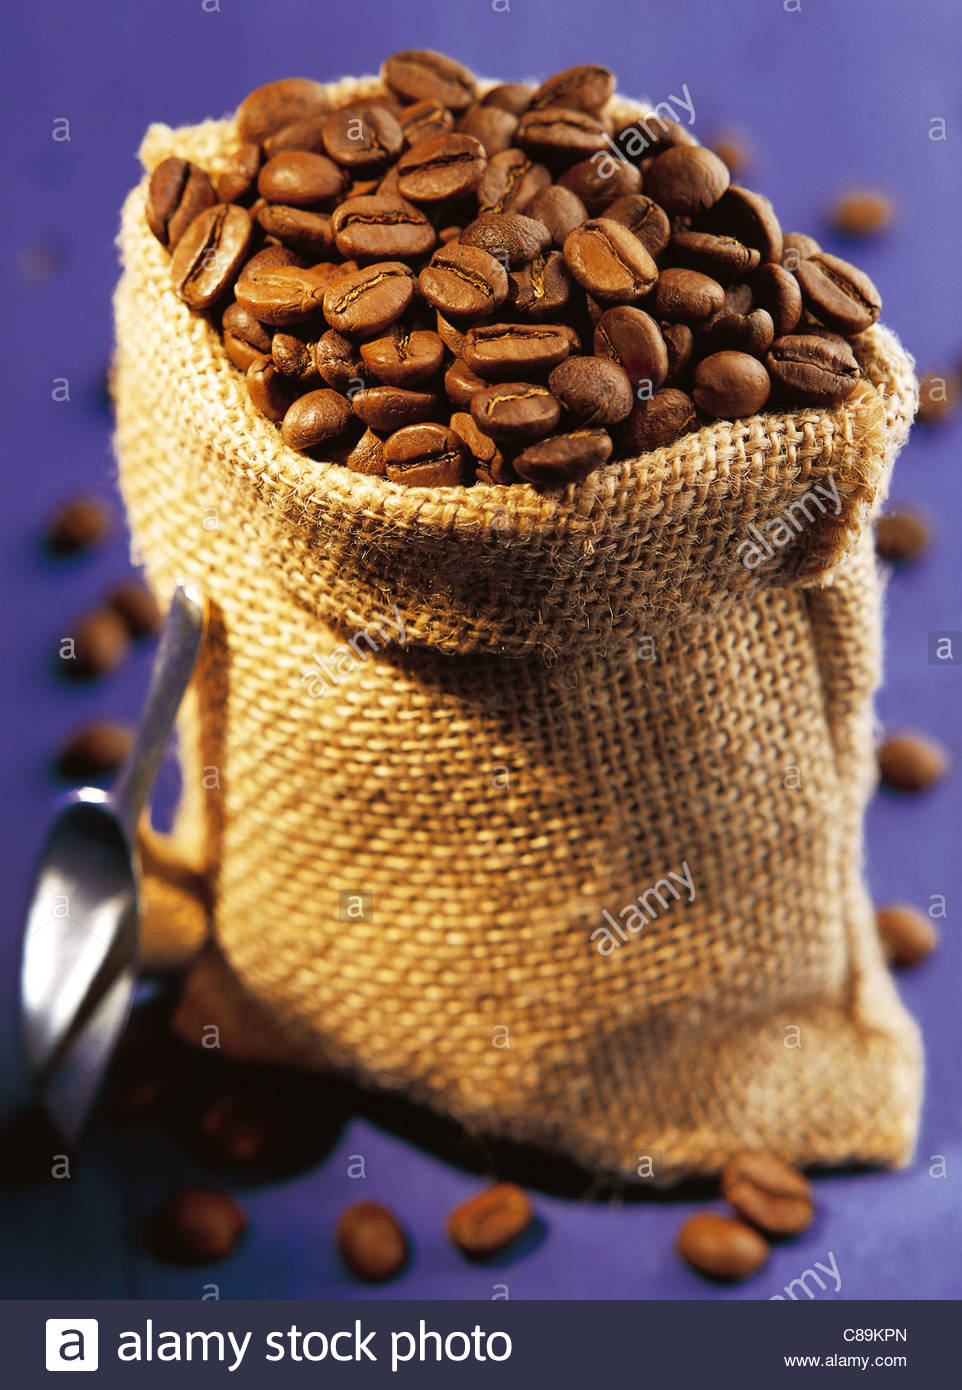 Bag of coffee beans - Stock Image